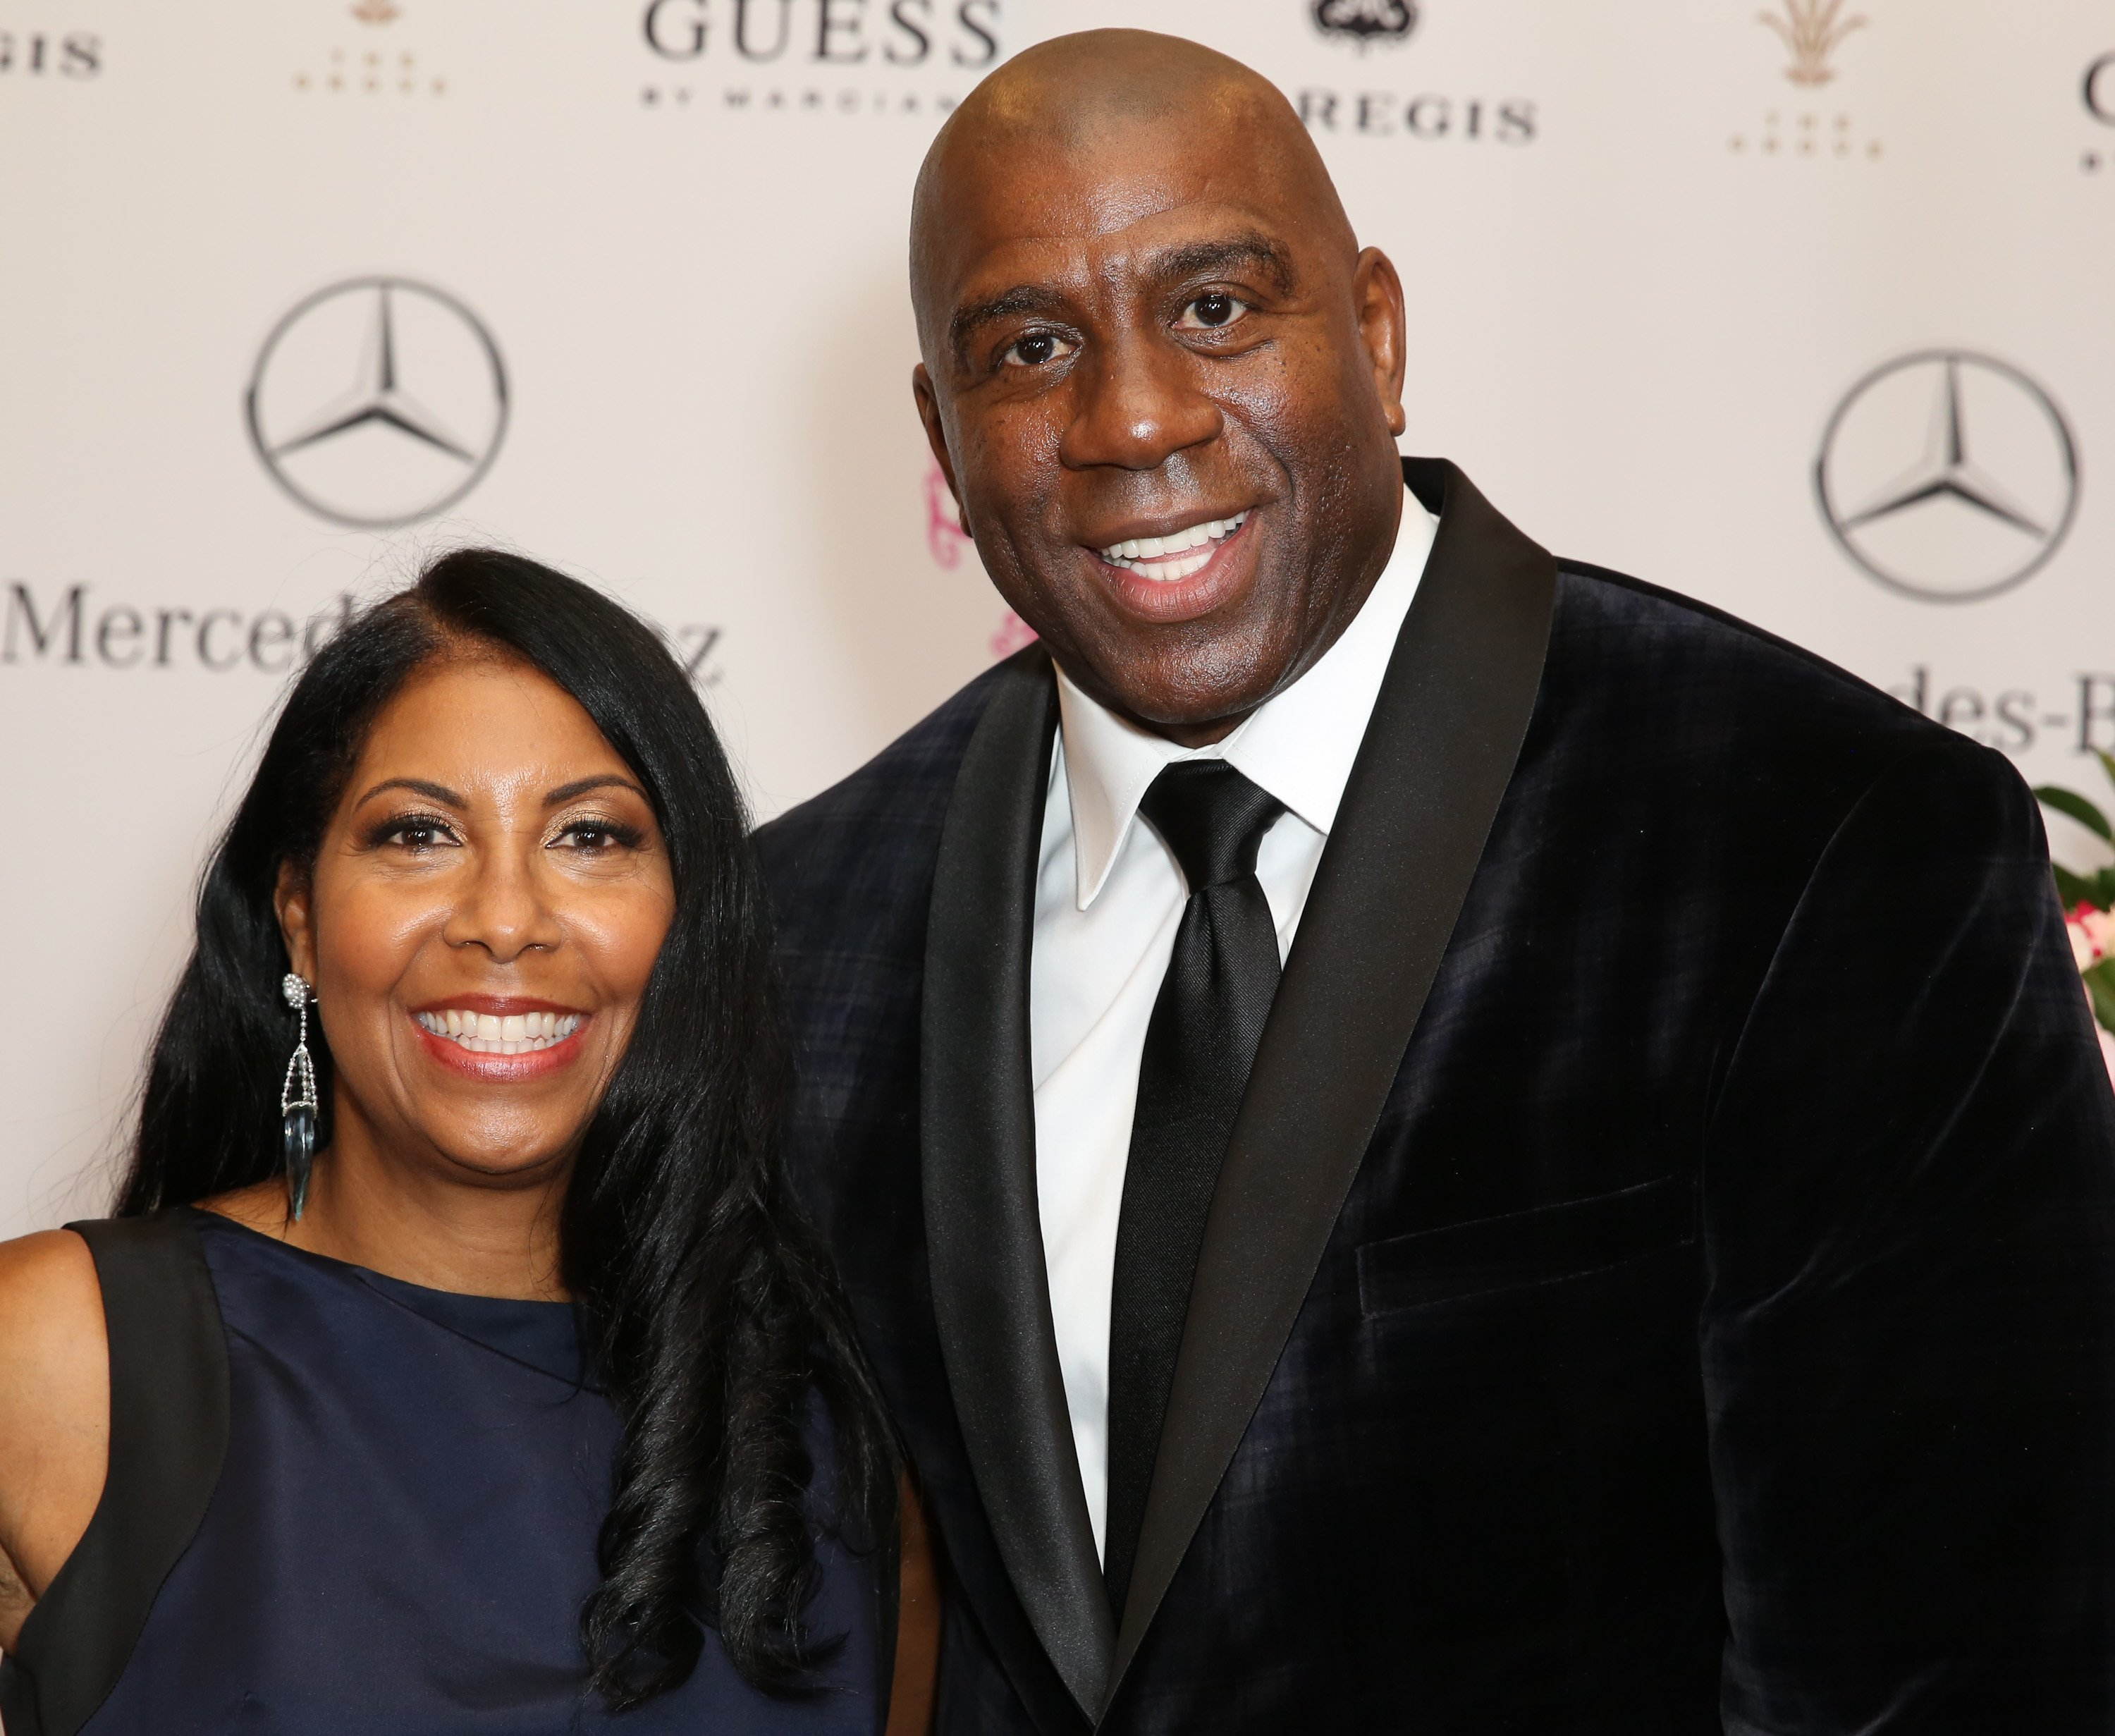 Earvin Magic Johnson and his wife Cookie Johnson at an event | Photo: GEtty Images